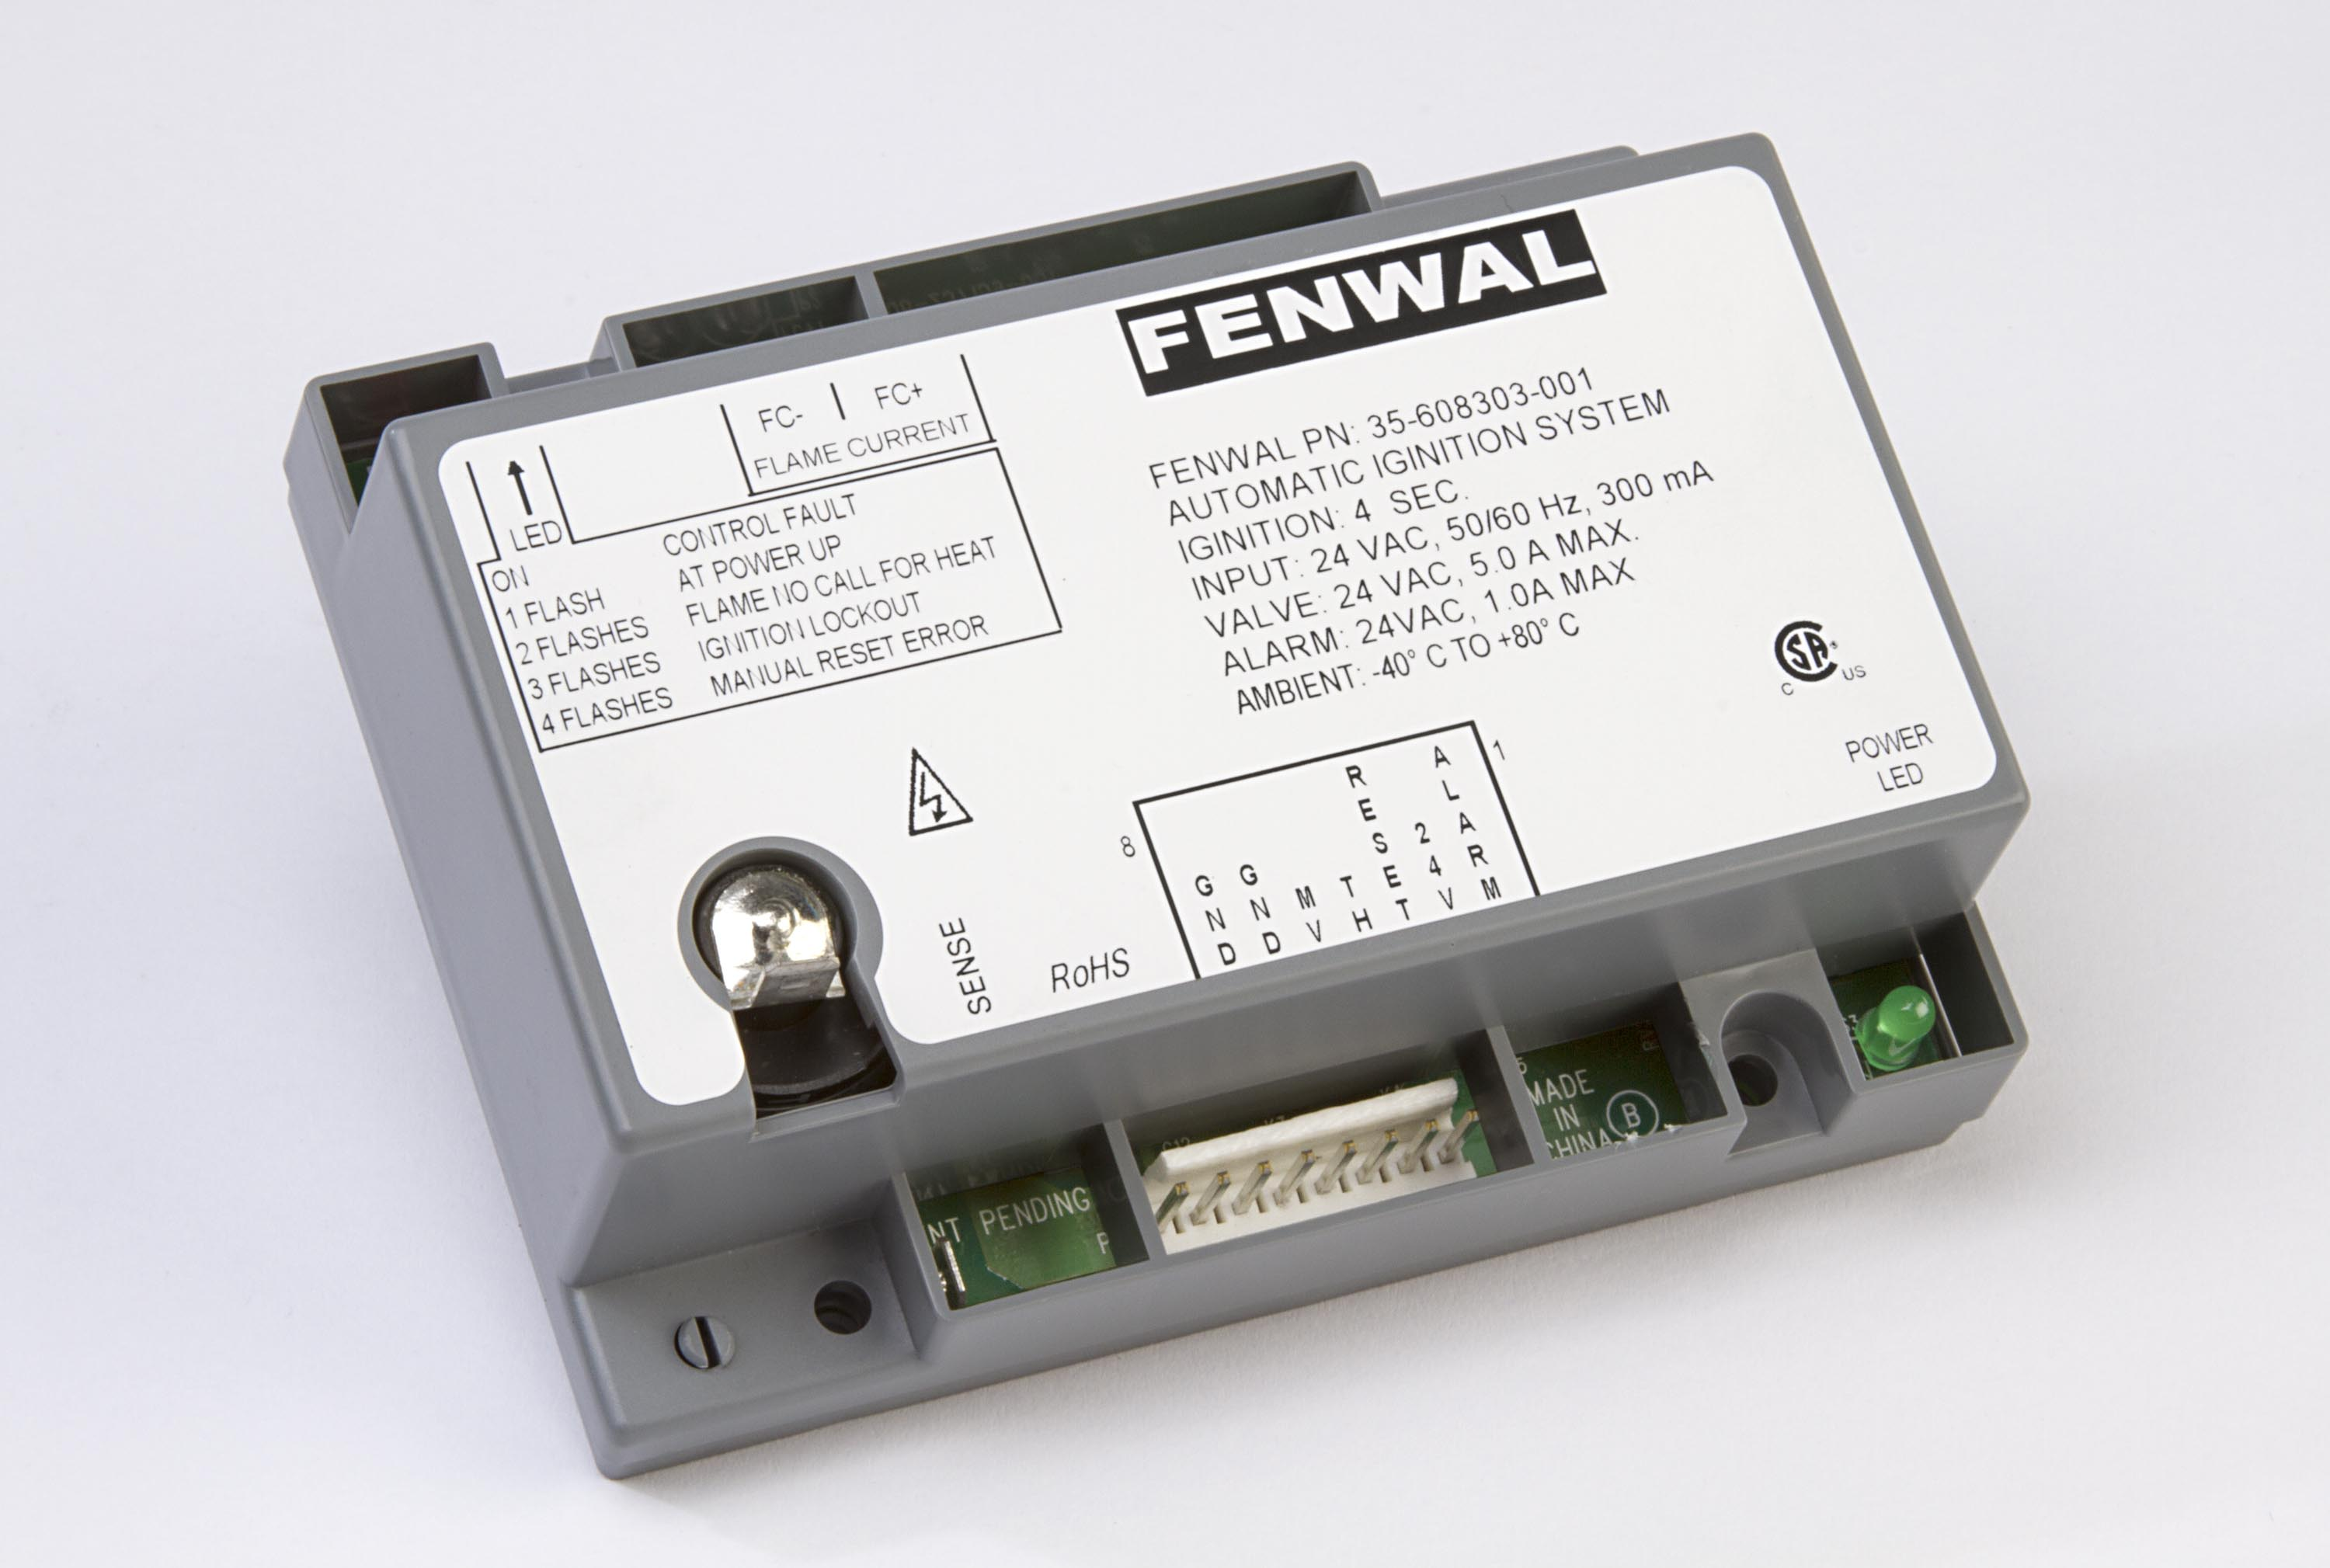 Fenwal Controls Electricity Electronics And Wiring Diagrams For Hvac R Pdf 35 608400 Series